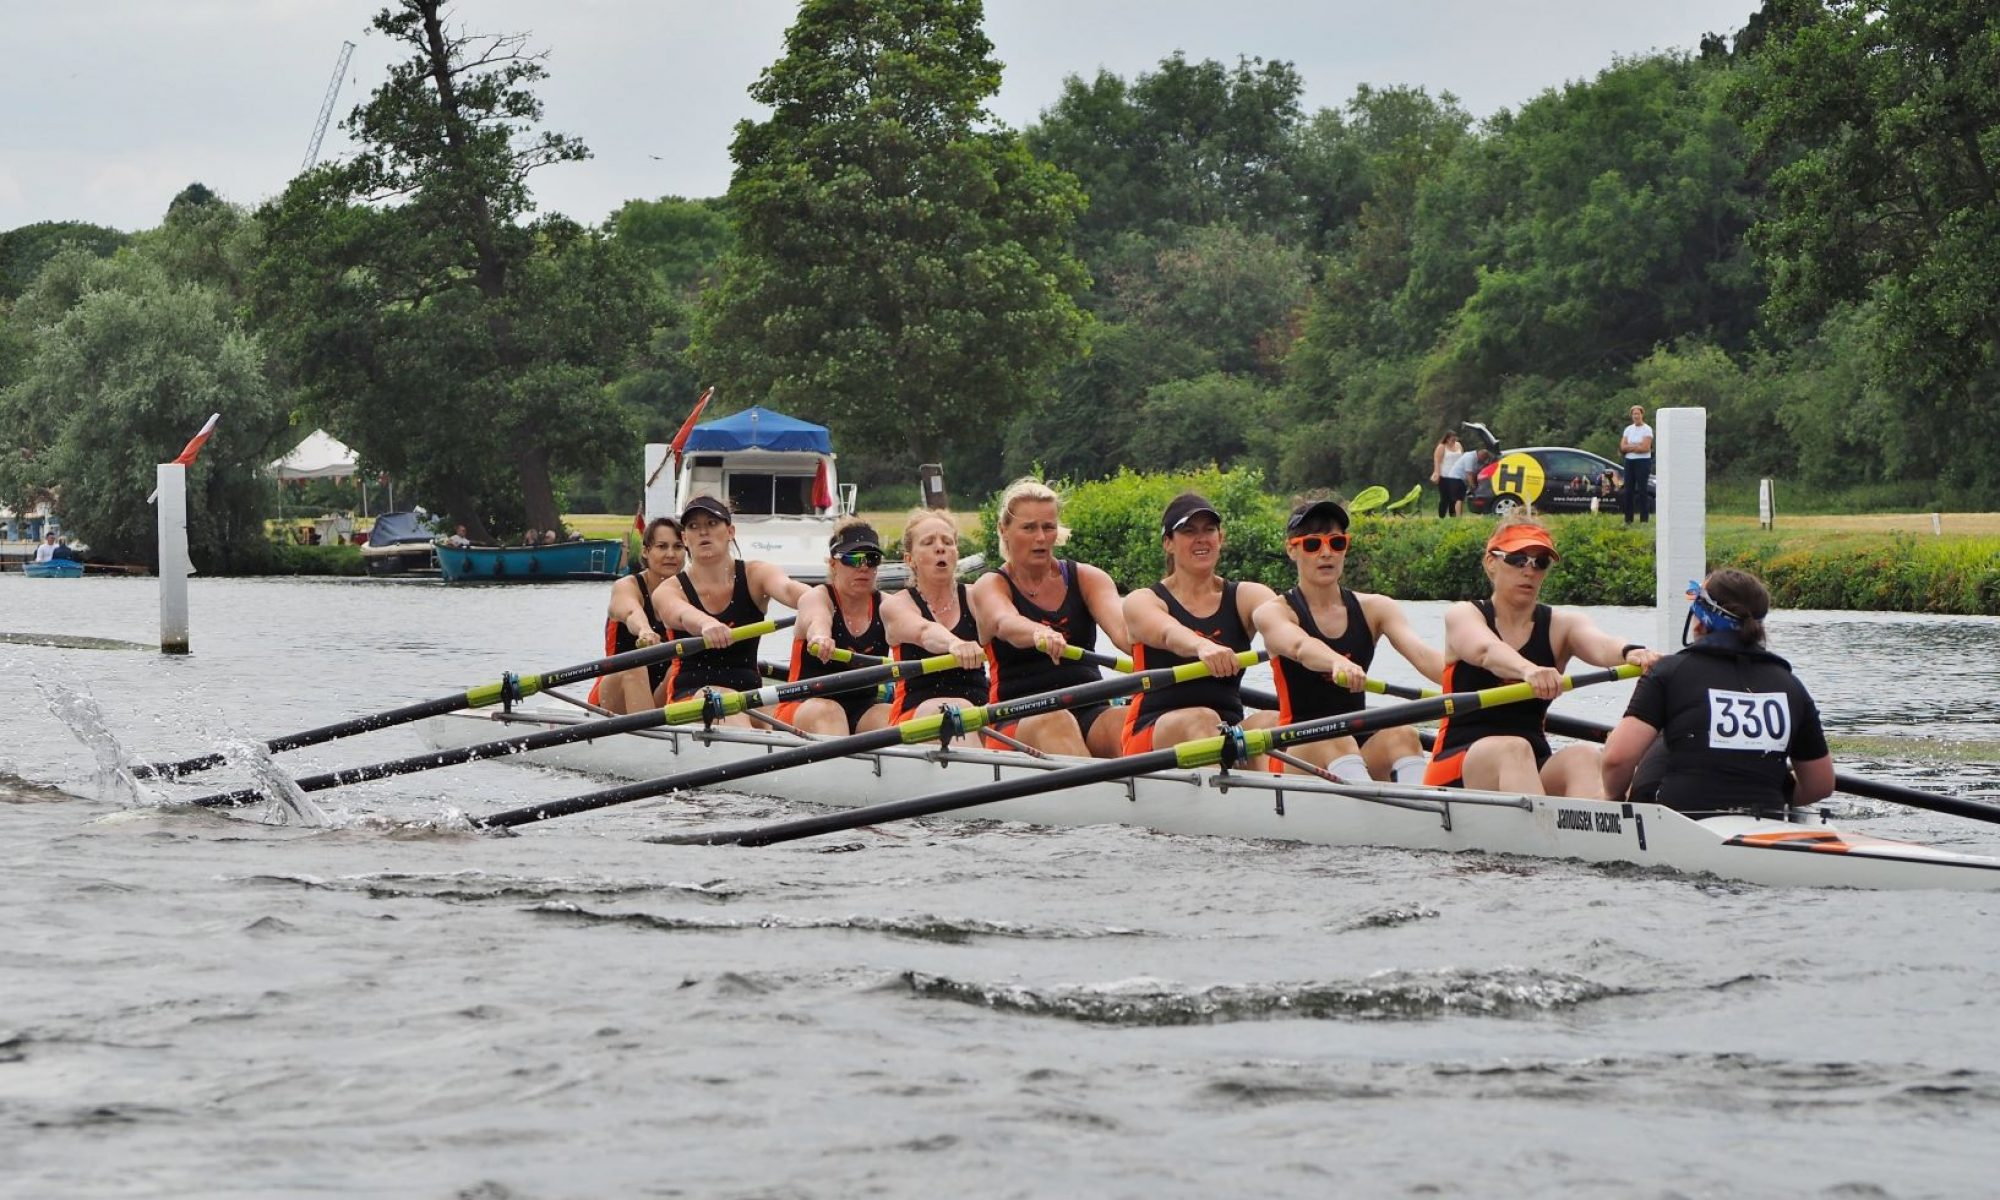 Champion of the Thames Rowing Club